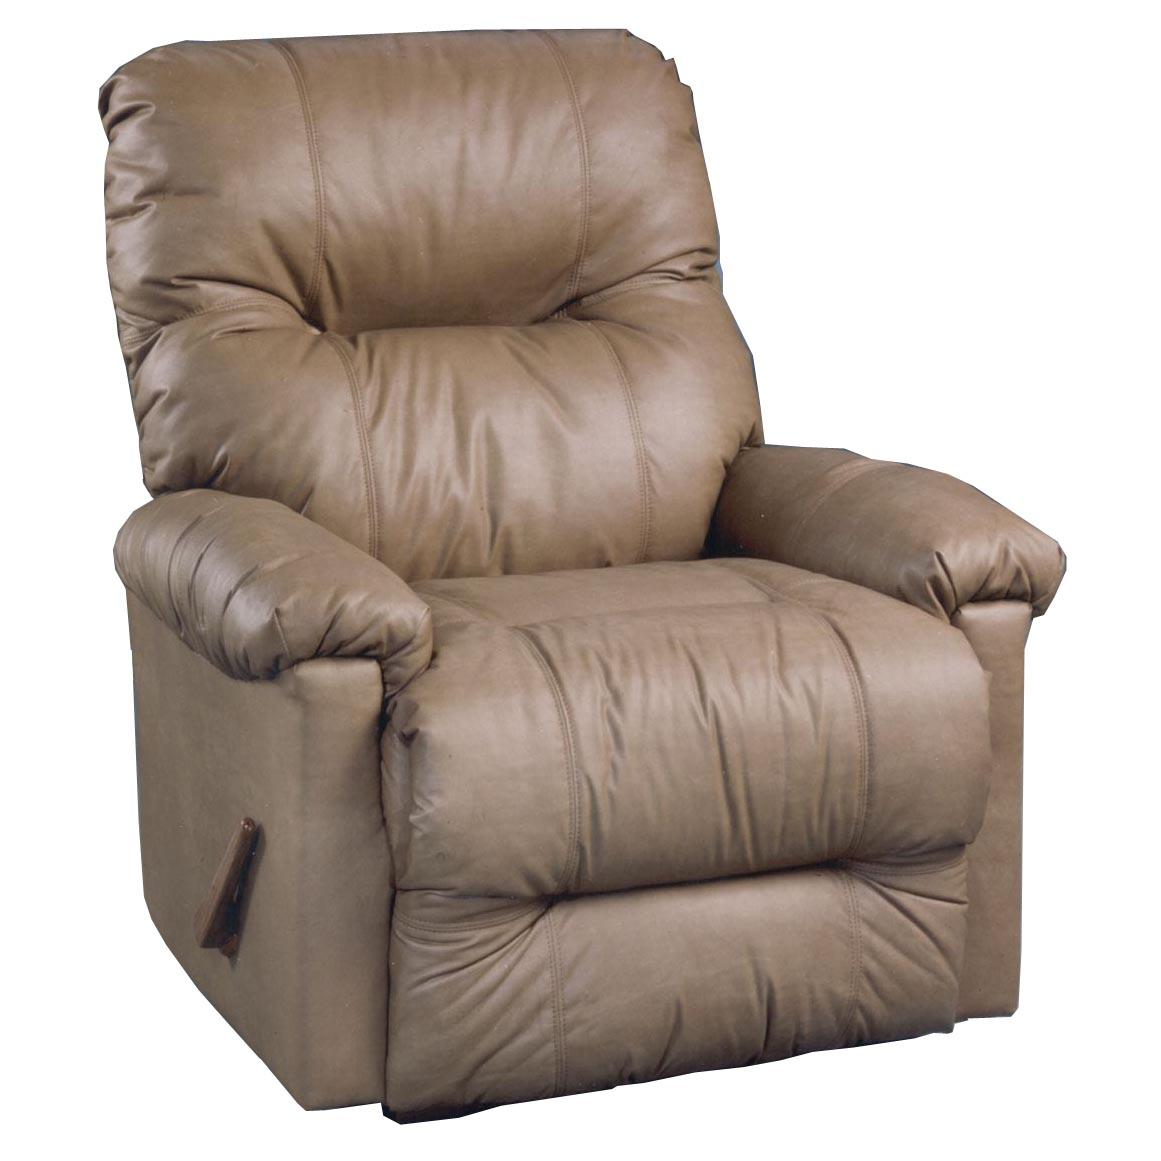 Reclining Rocking Chair Best Home Furnishings Petite Recliners Wynette Power